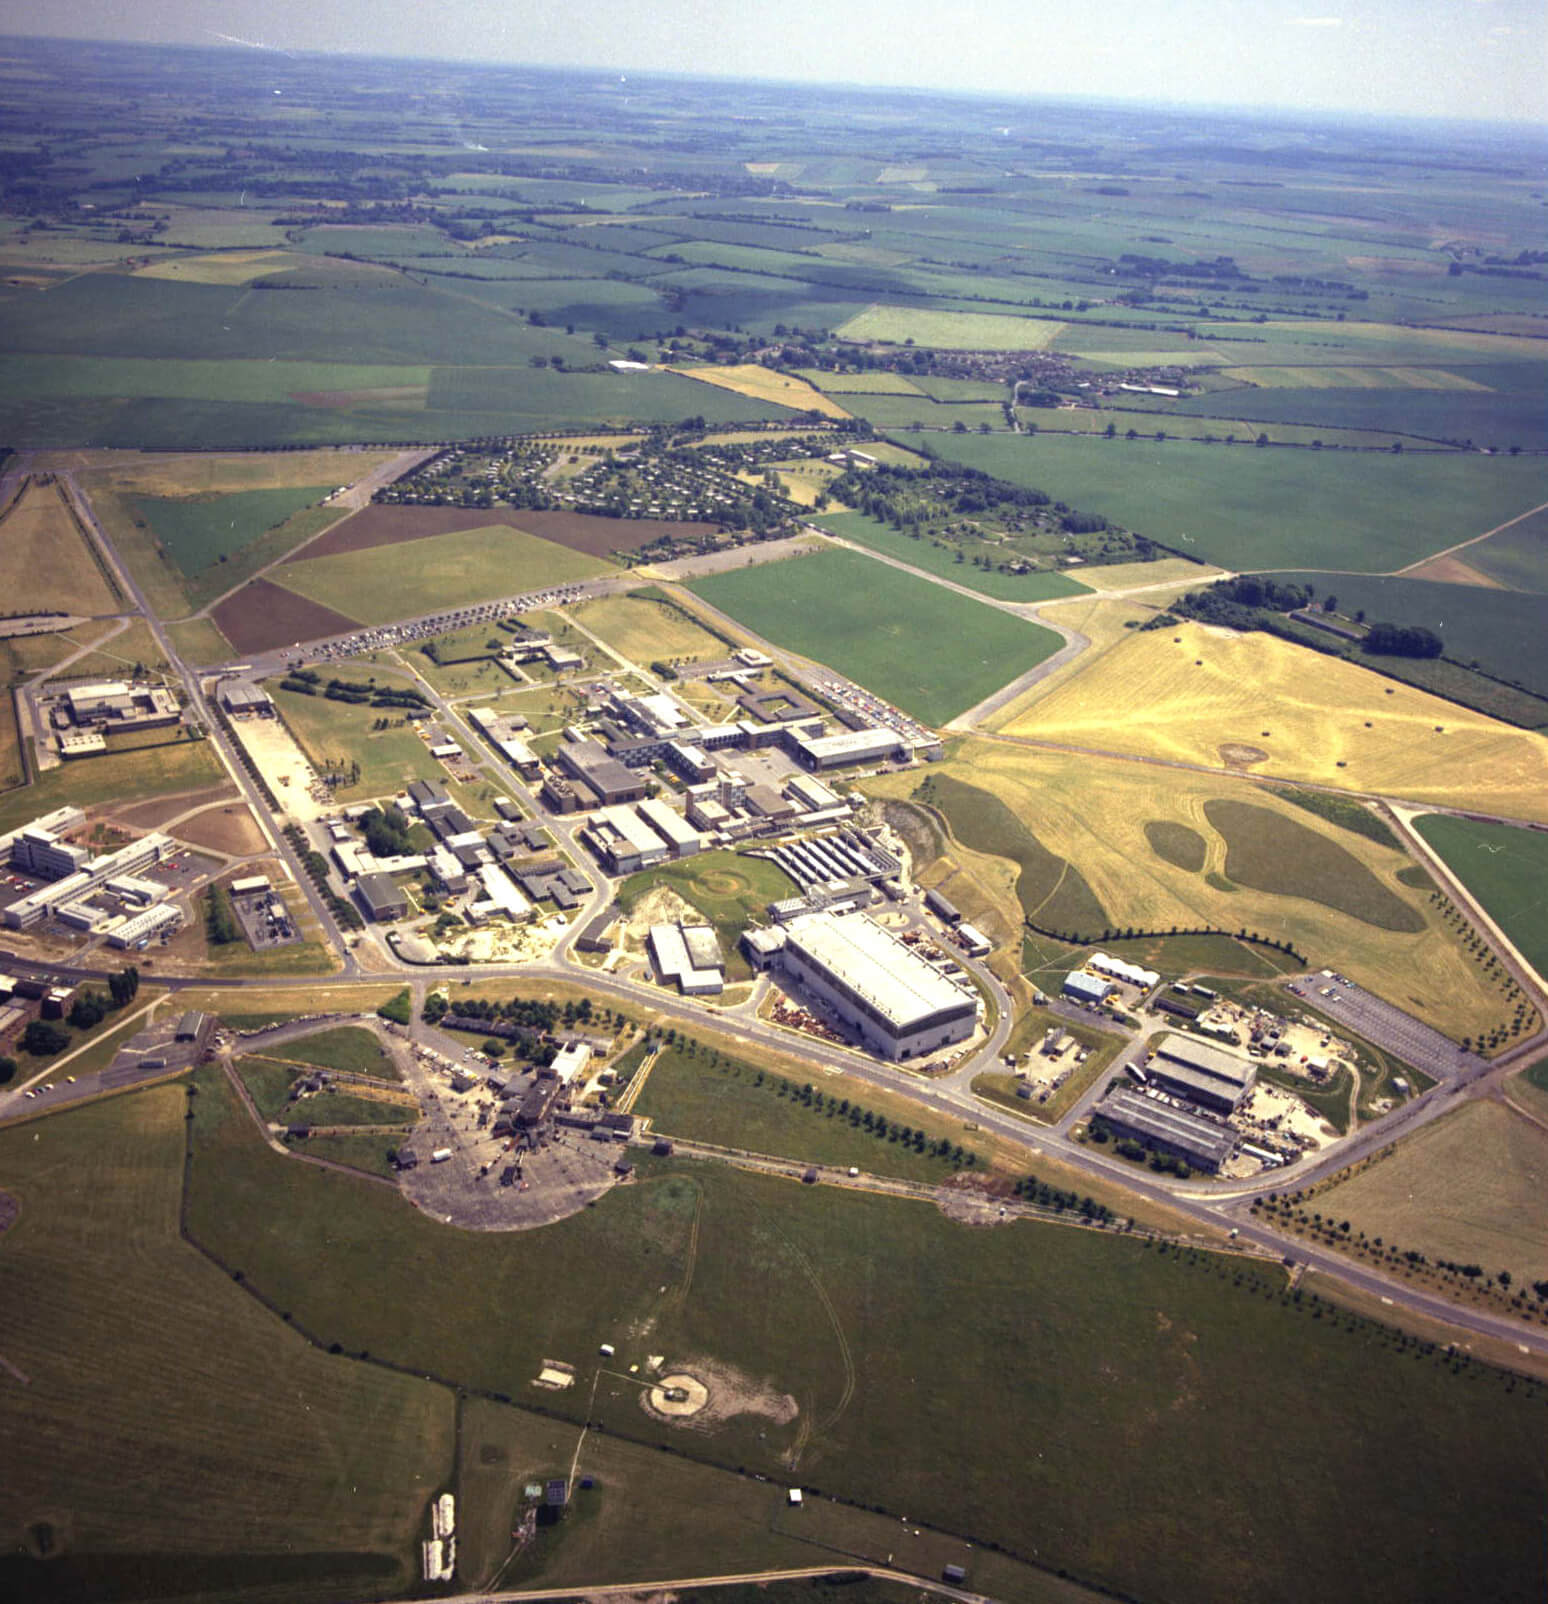 007 > Rutherford Appleton Laboratory